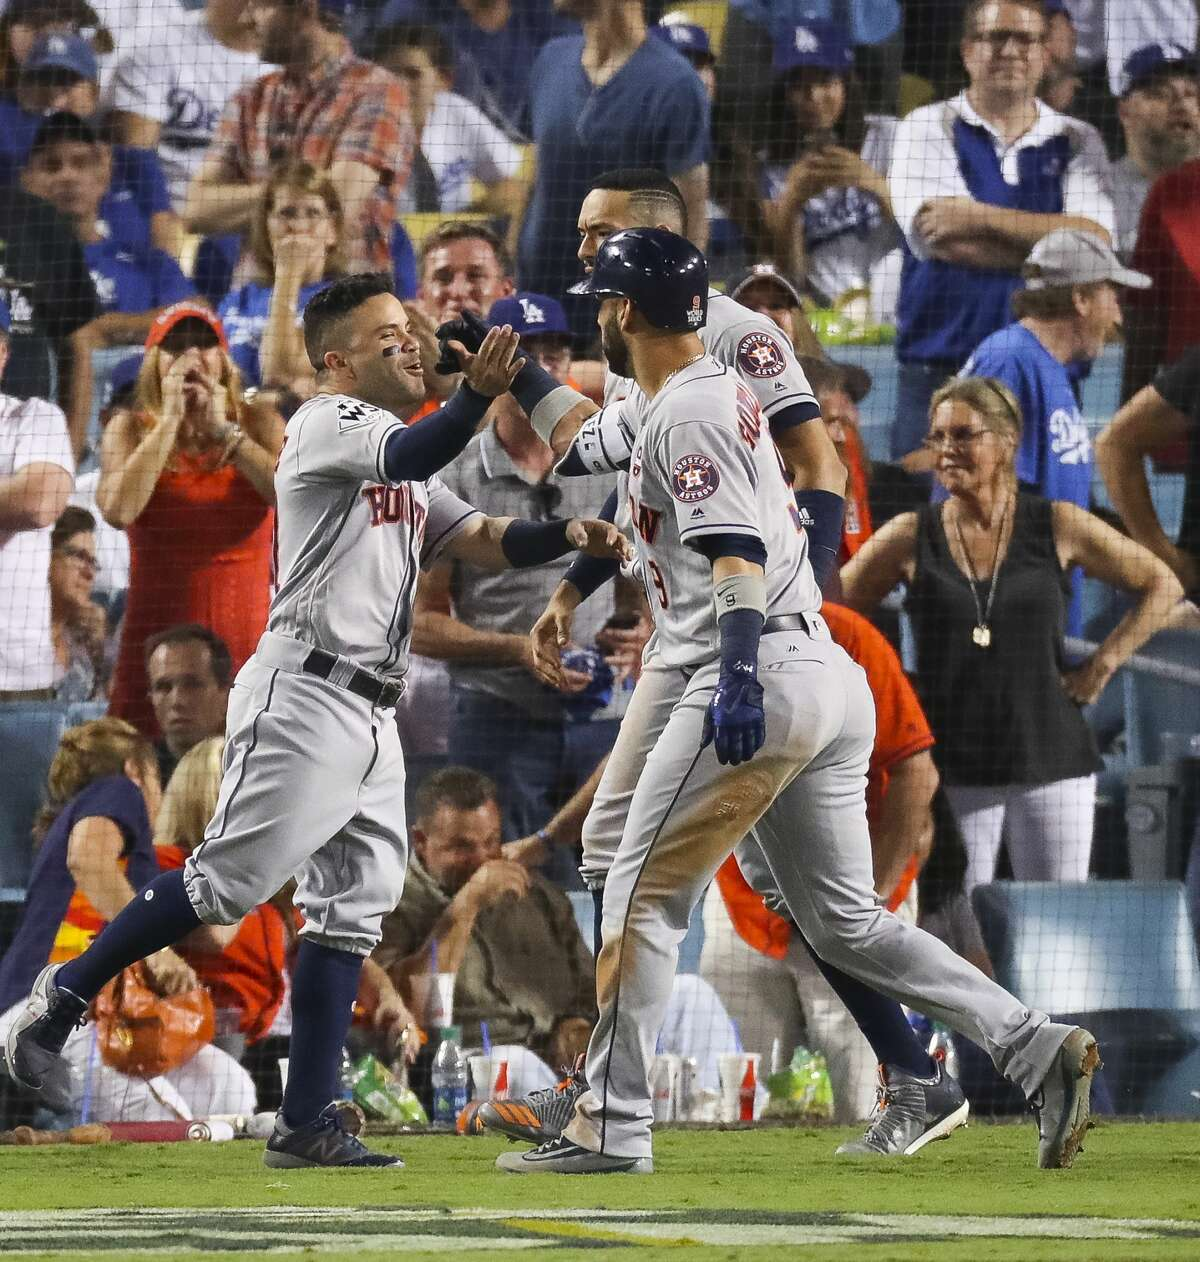 Houston Astros second baseman Jose Altuve (27) and short stop Carlos Correa greet left fielder Marwin Gonzalez (9) at home after Gonzalez hit a home run in the ninth inning of Game 2 of the World Series at Dodger Stadium on Wednesday, Oct. 25, 2017, in Los Angeles.